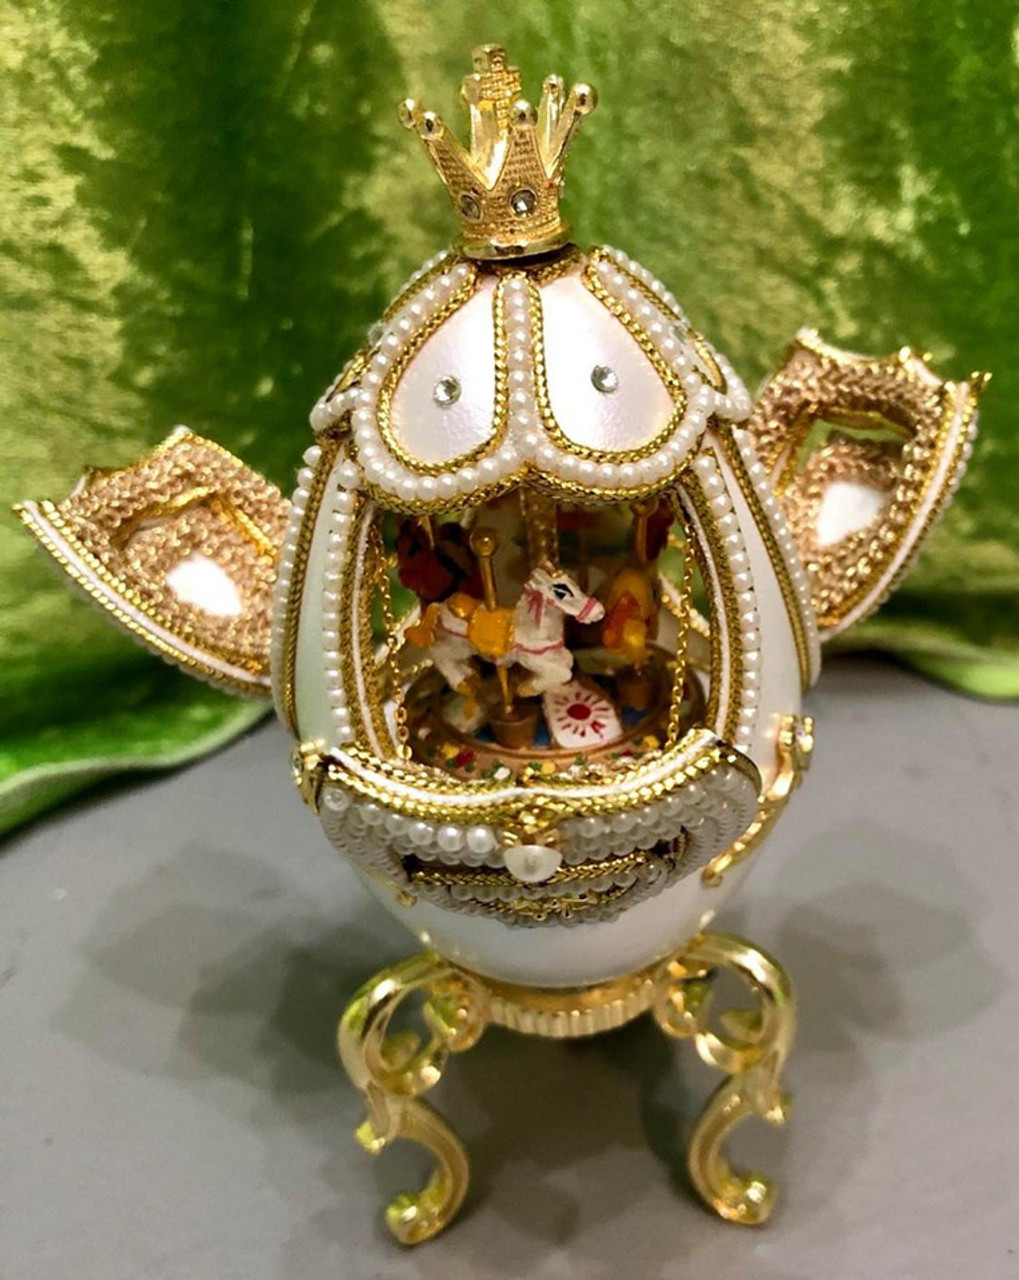 Matashi Crystals Delicate Egg - Wind-up Music Box